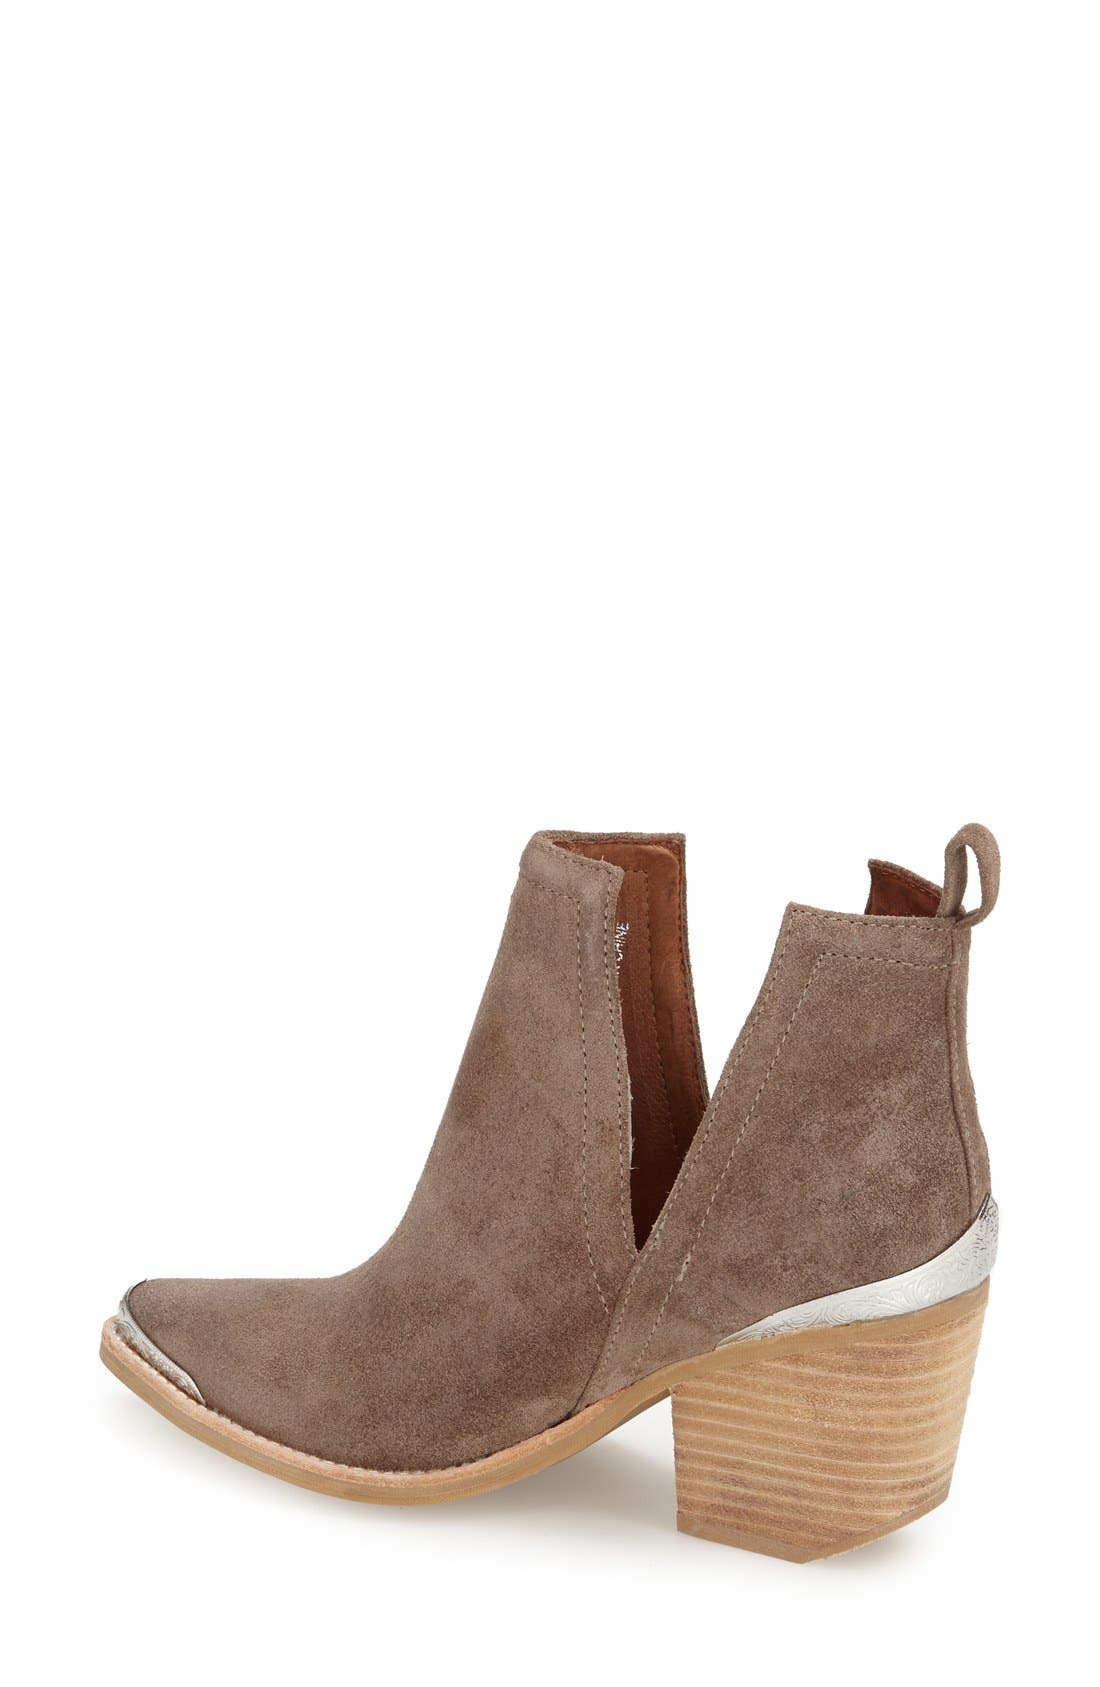 b236e33a7ce9 Women's Jeffrey Campbell Fashion Trends: Clothing, Shoes & Accessories |  Nordstrom